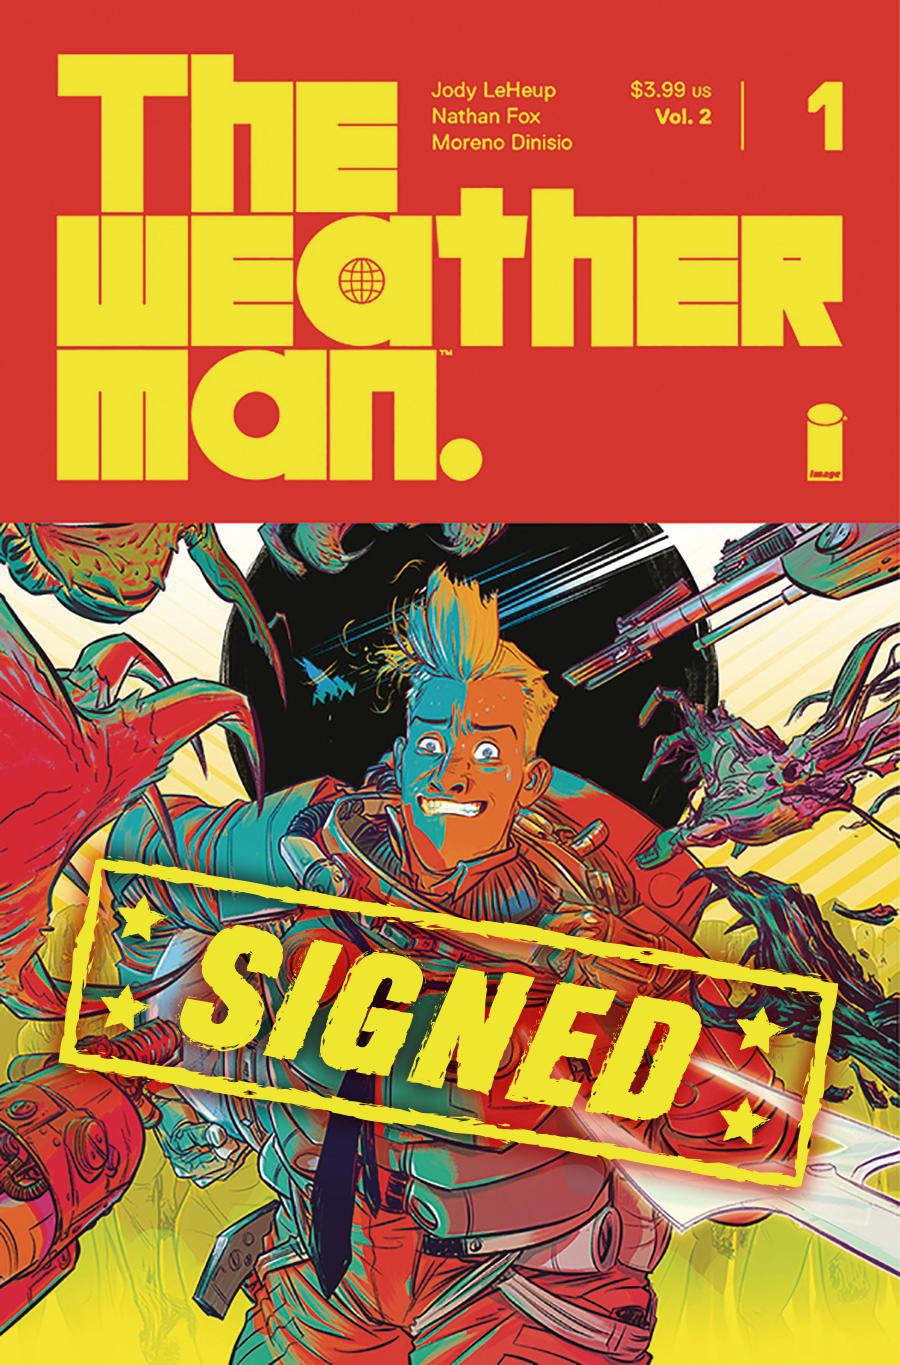 Weatherman Vol 2 #1 Cover D Regular Nathan Fox Cover Signed By Jody LeHeup & Nathan Fox